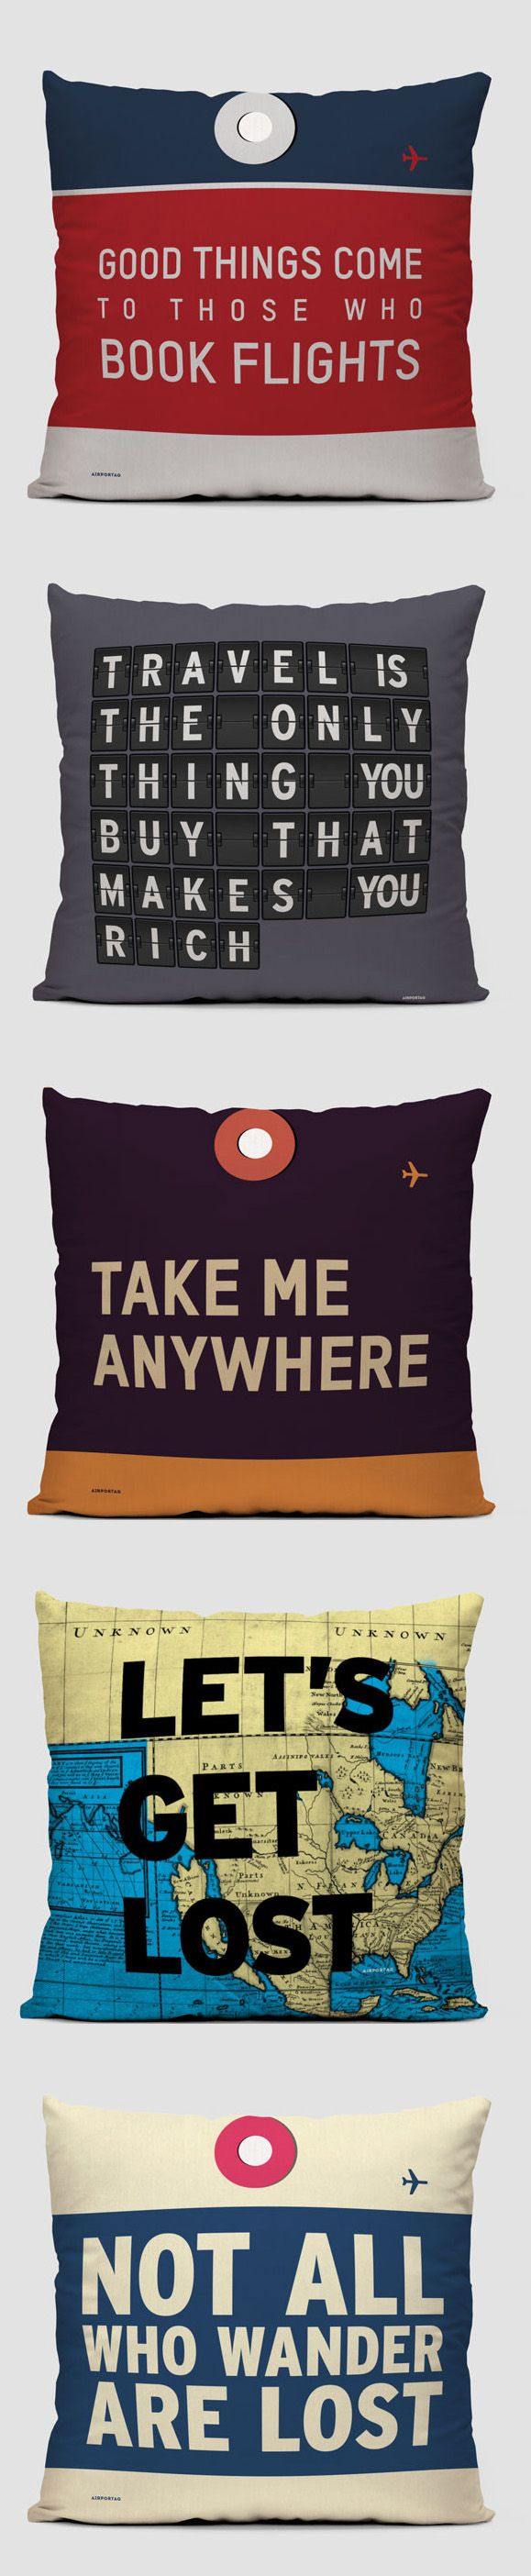 Travel Quote Pillows // Black Friday 20% Off Coupon Code: BLK20